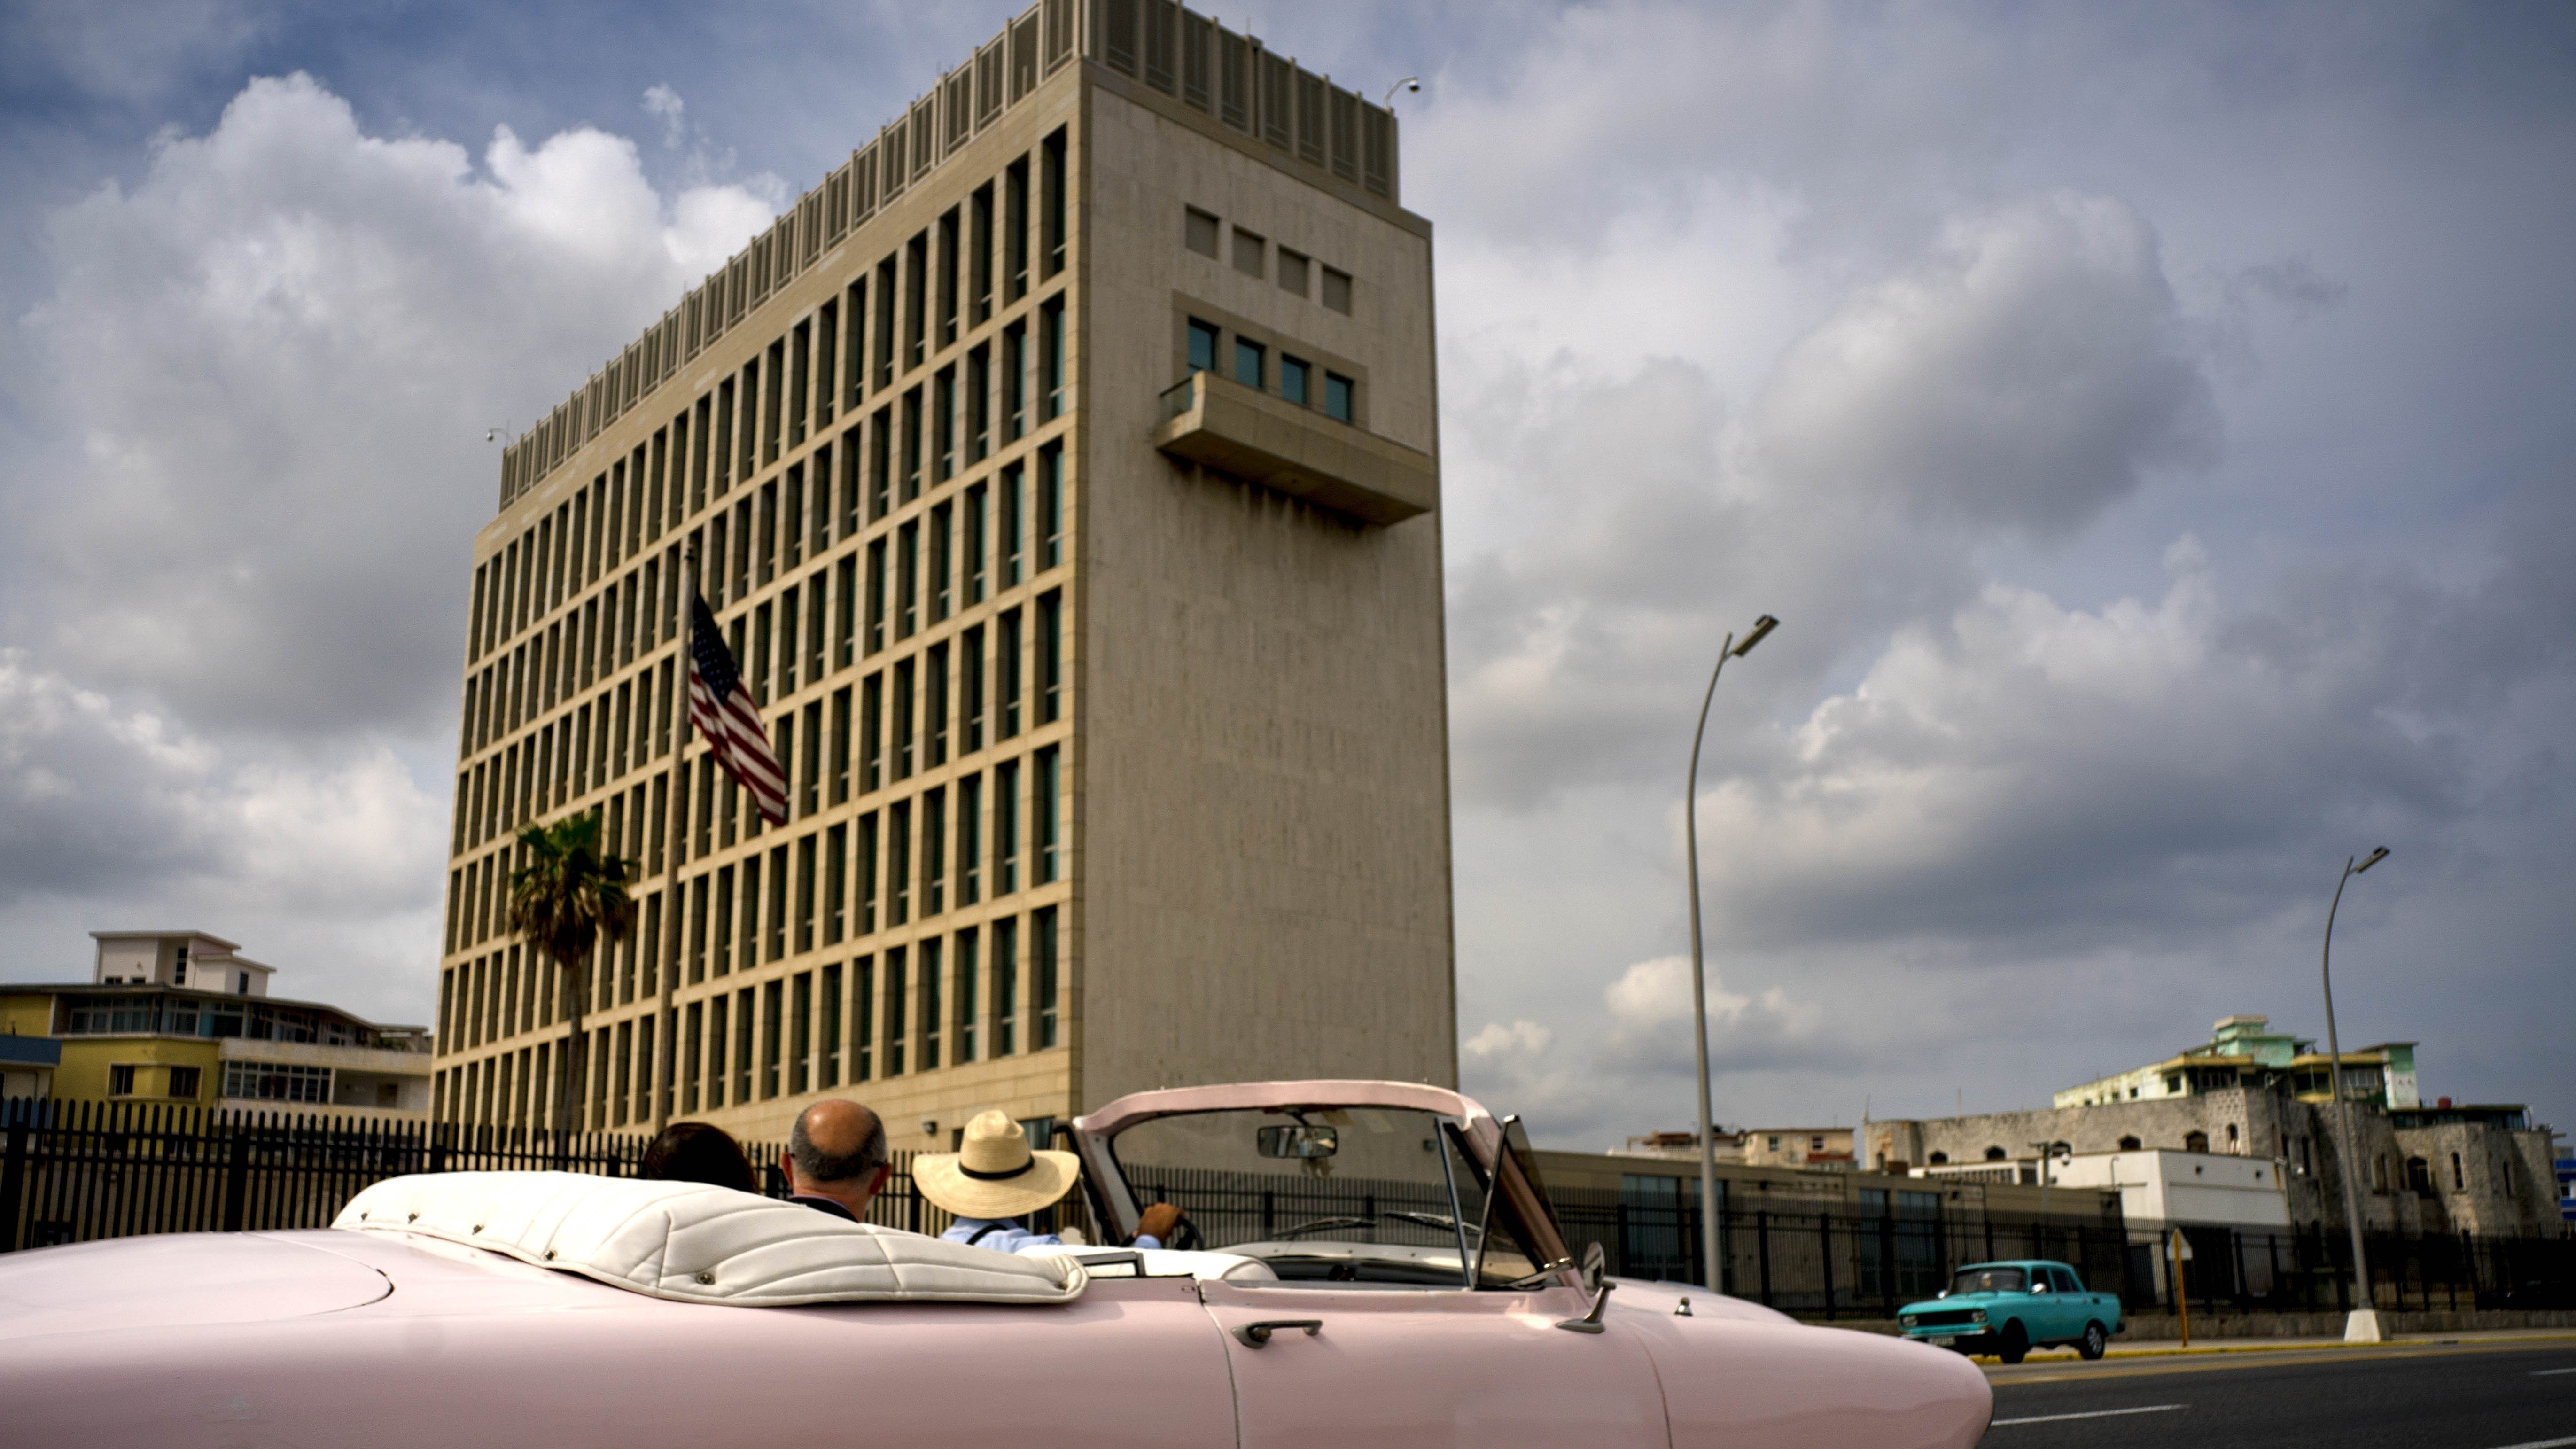 npr.org - Jon Hamilton - Doubts Rise About Evidence That U.S. Diplomats In Cuba Were Attacked